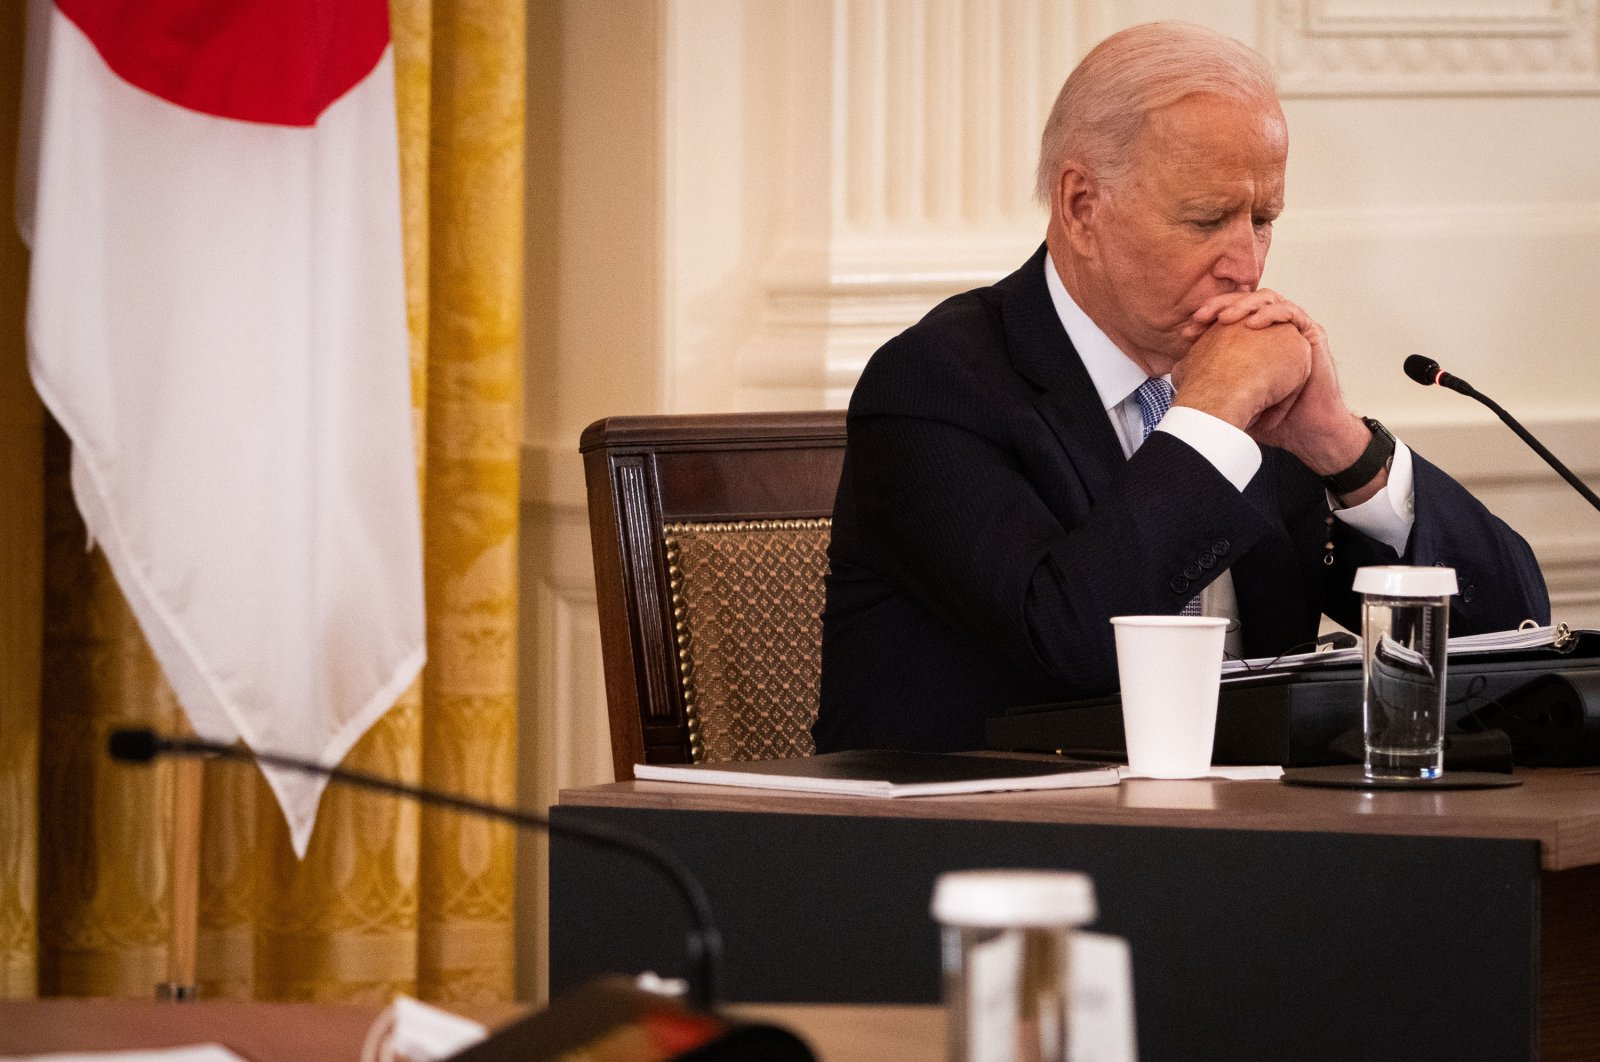 U.S. President Joe Biden pauses during a meeting in the East Room of the White House in Washington, D.C., U.S., Sept. 24, 2021. (Getty Images Photo)